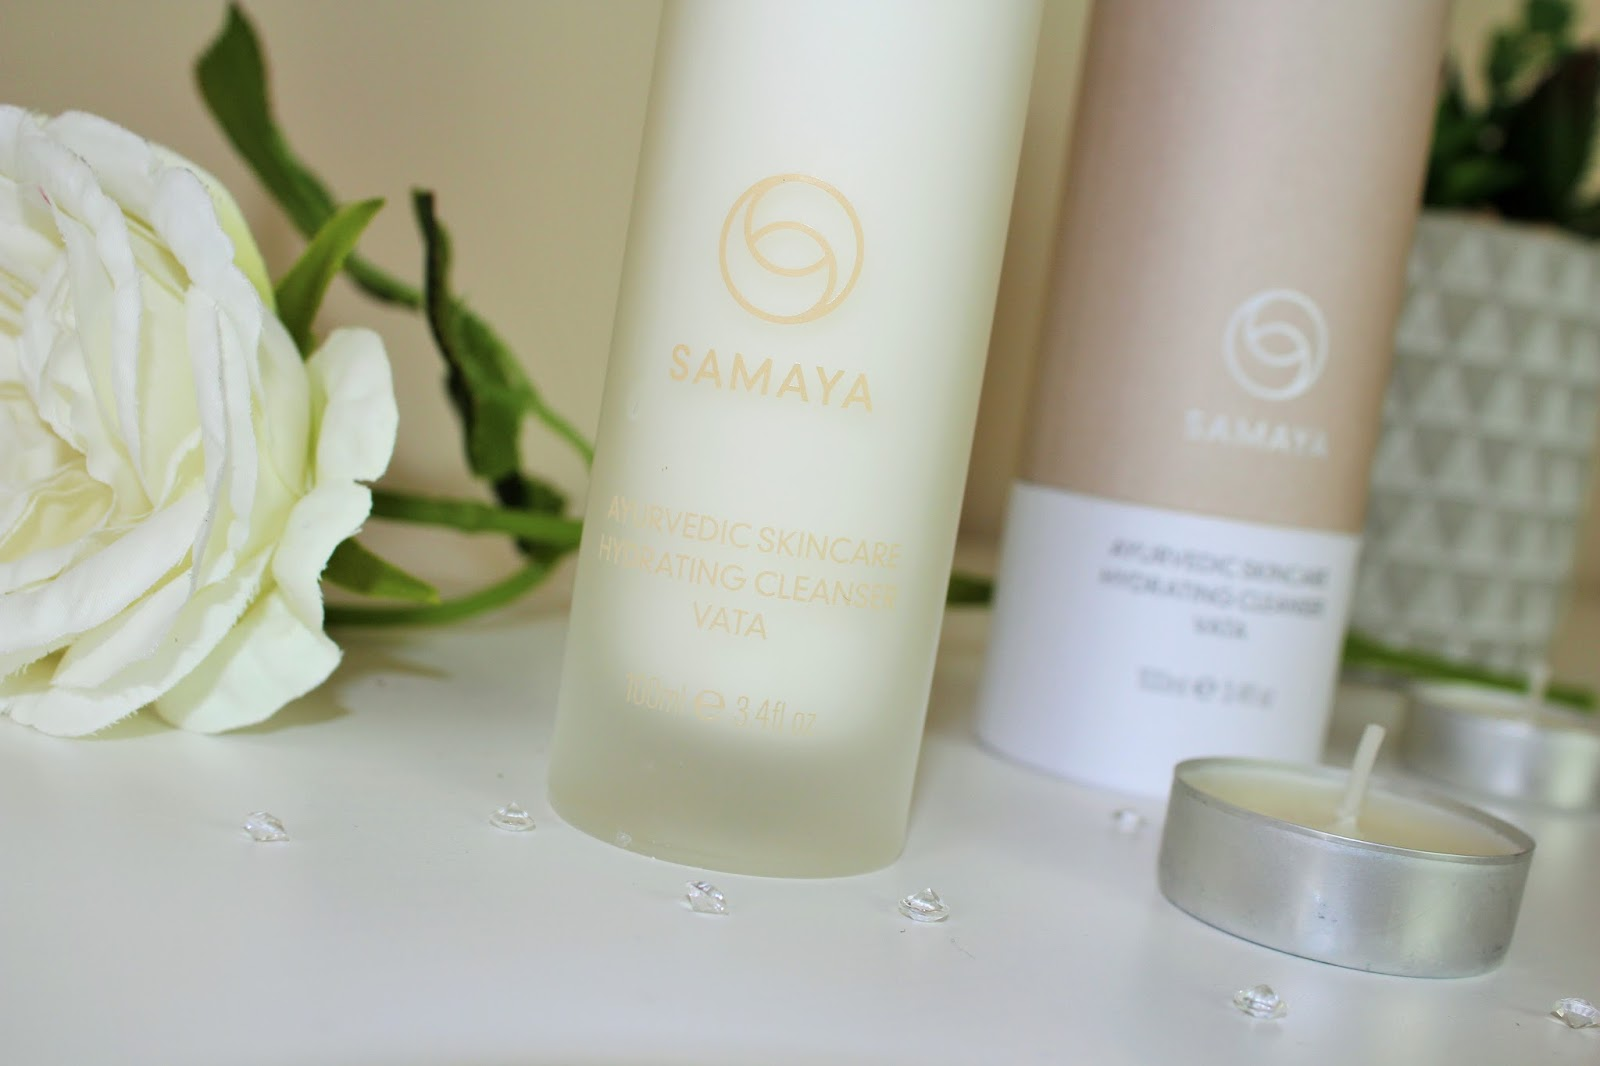 Do You Know Your Dosha? An Introduction To Samaya Ayurvedic Skincare - 4